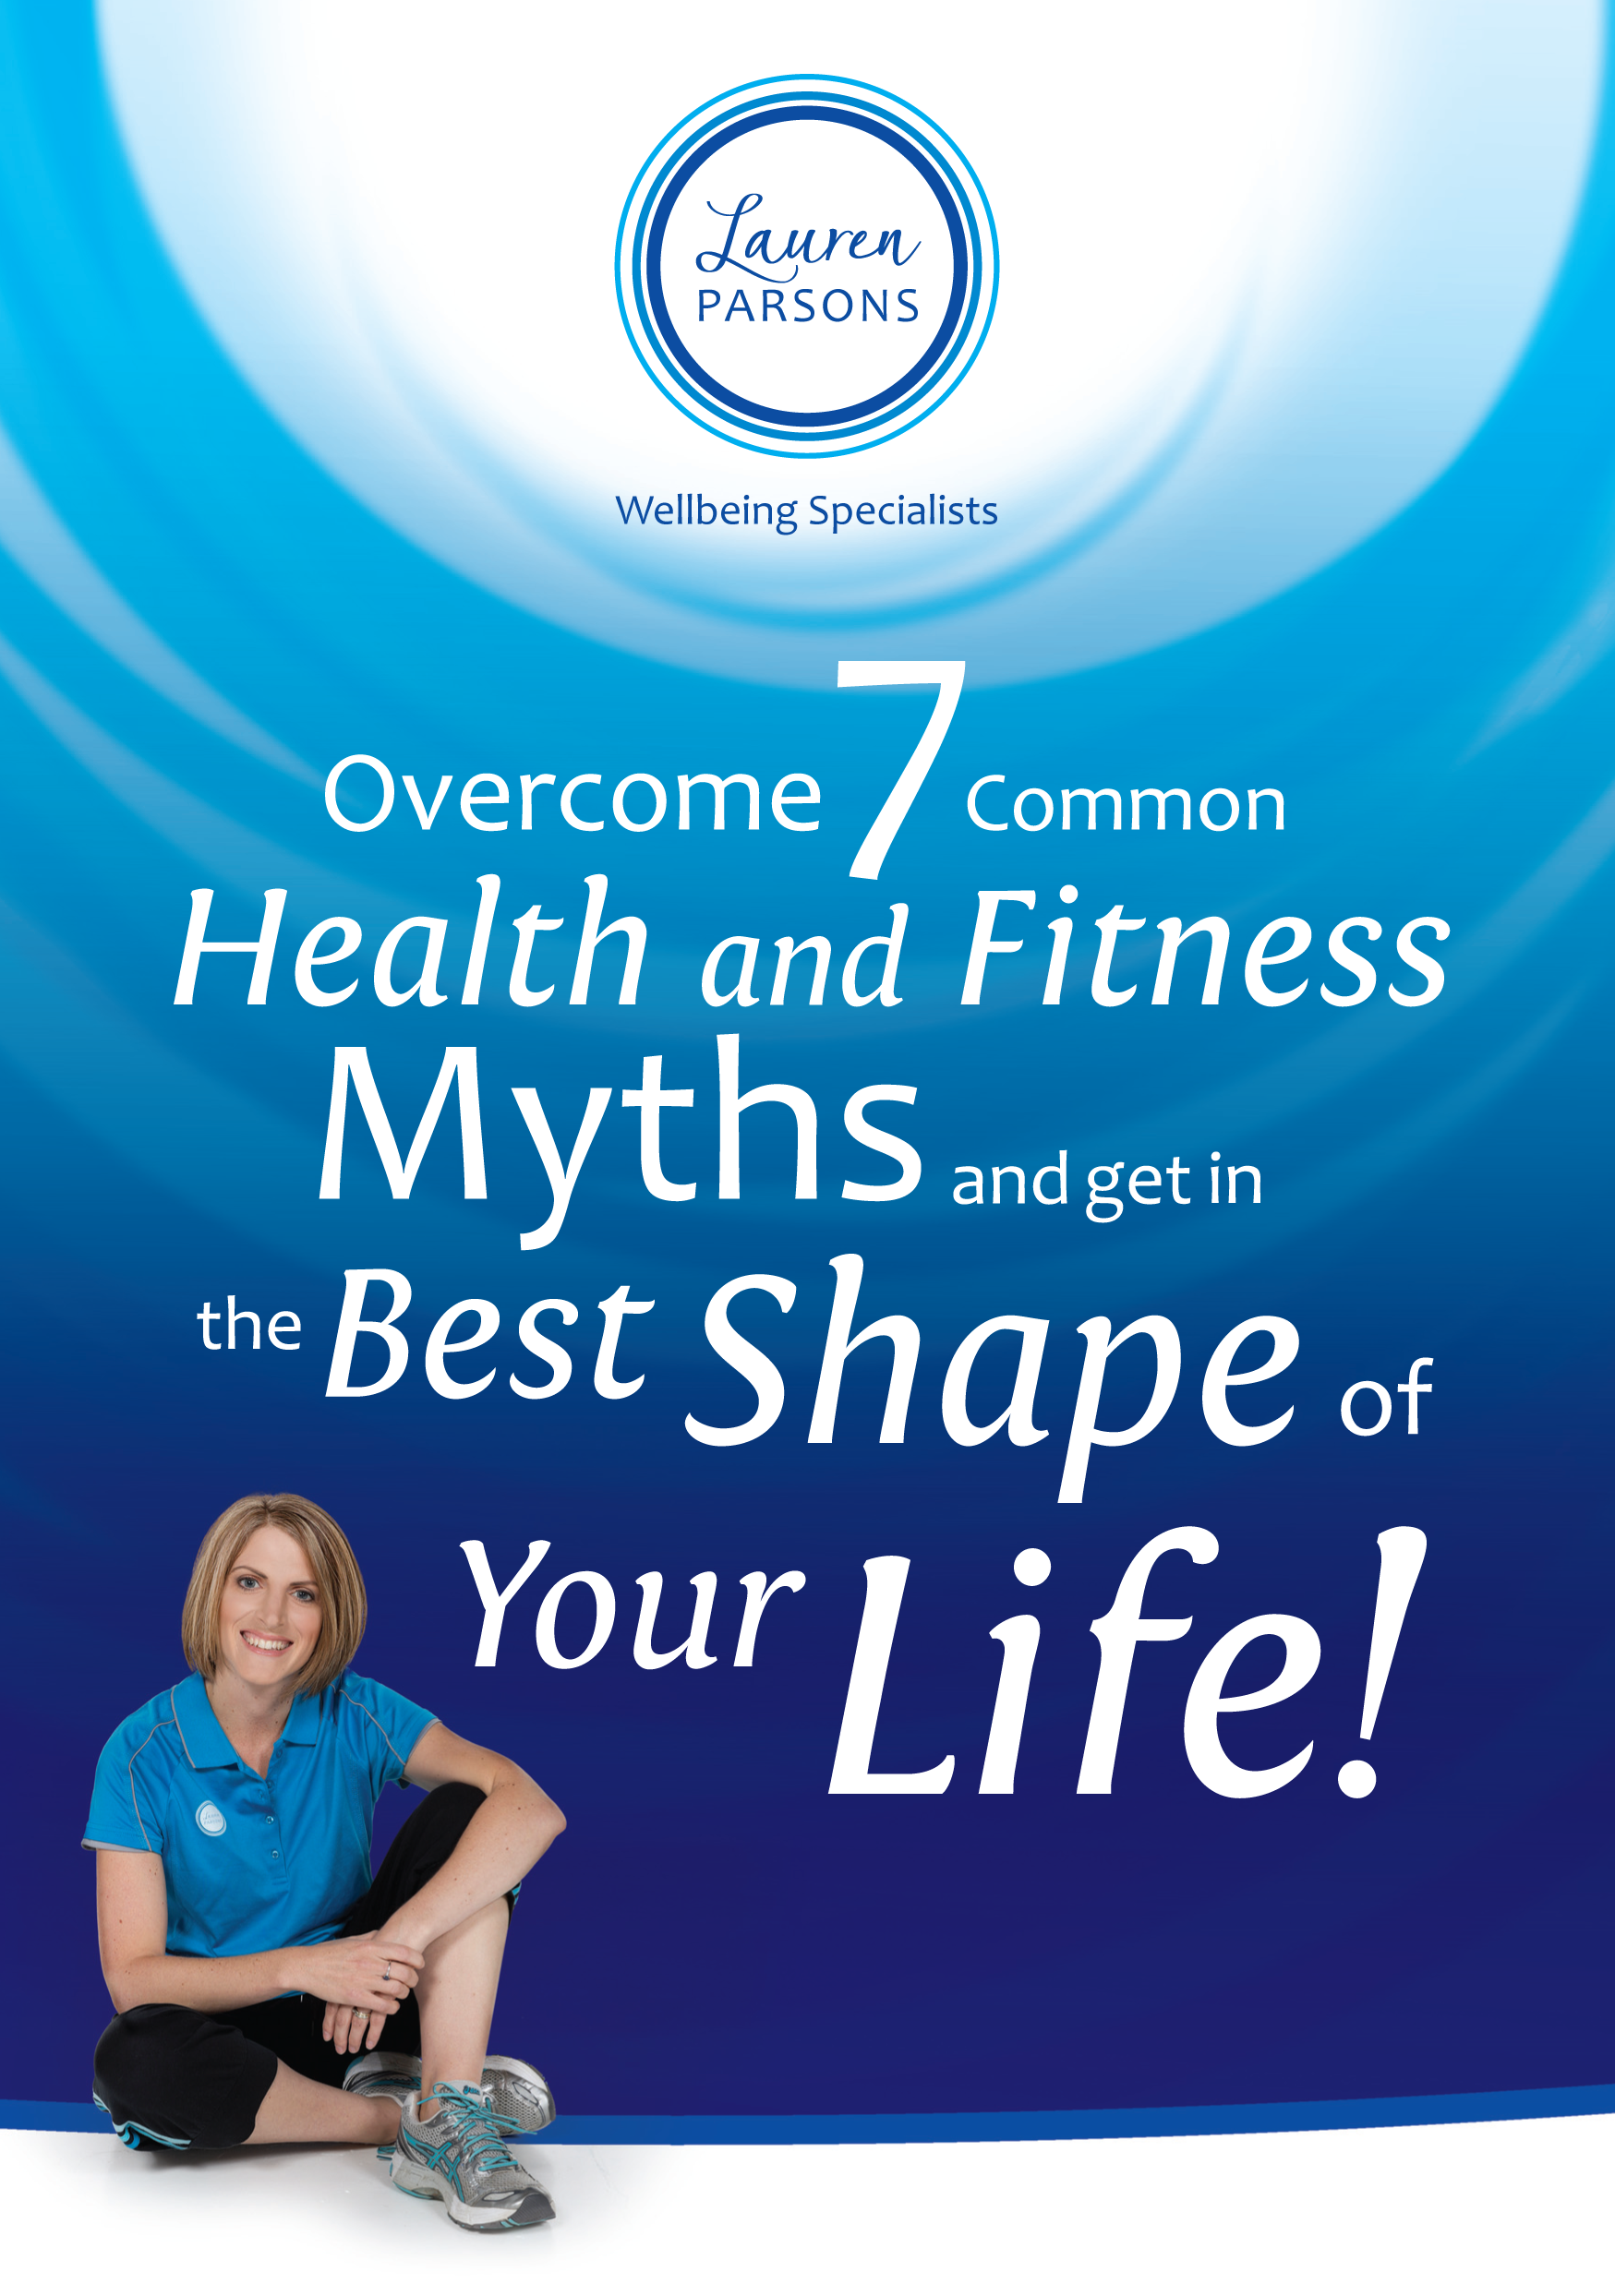 Lauren Parsons book on Myths of Overcome to get in the Best Shape of Your Life